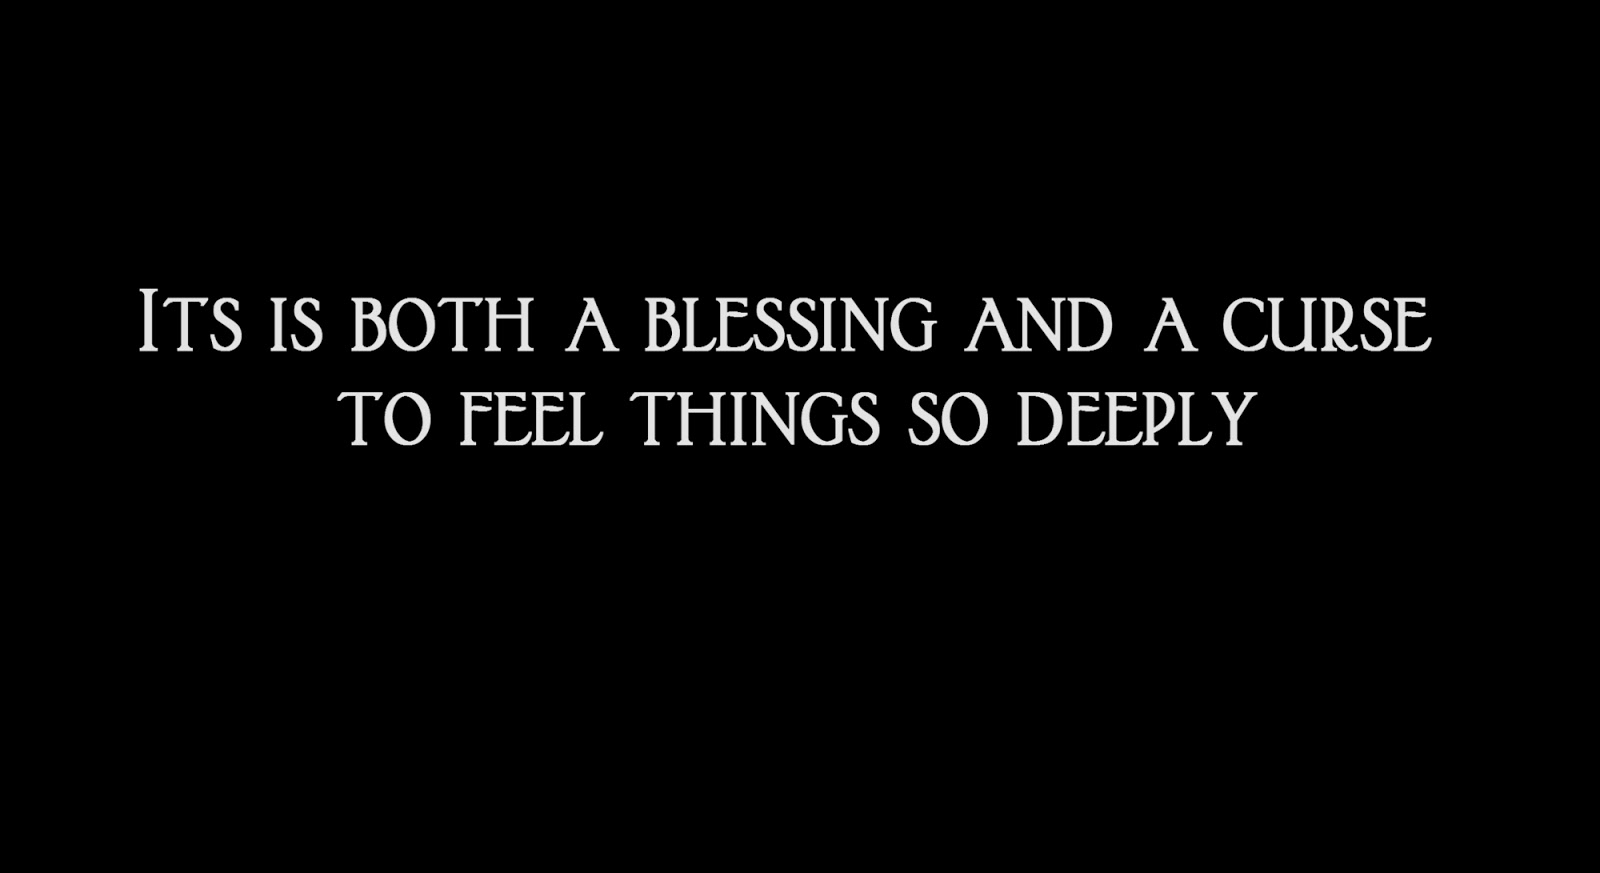 Bildresultat för it's both a blessing and a curse to feel everything